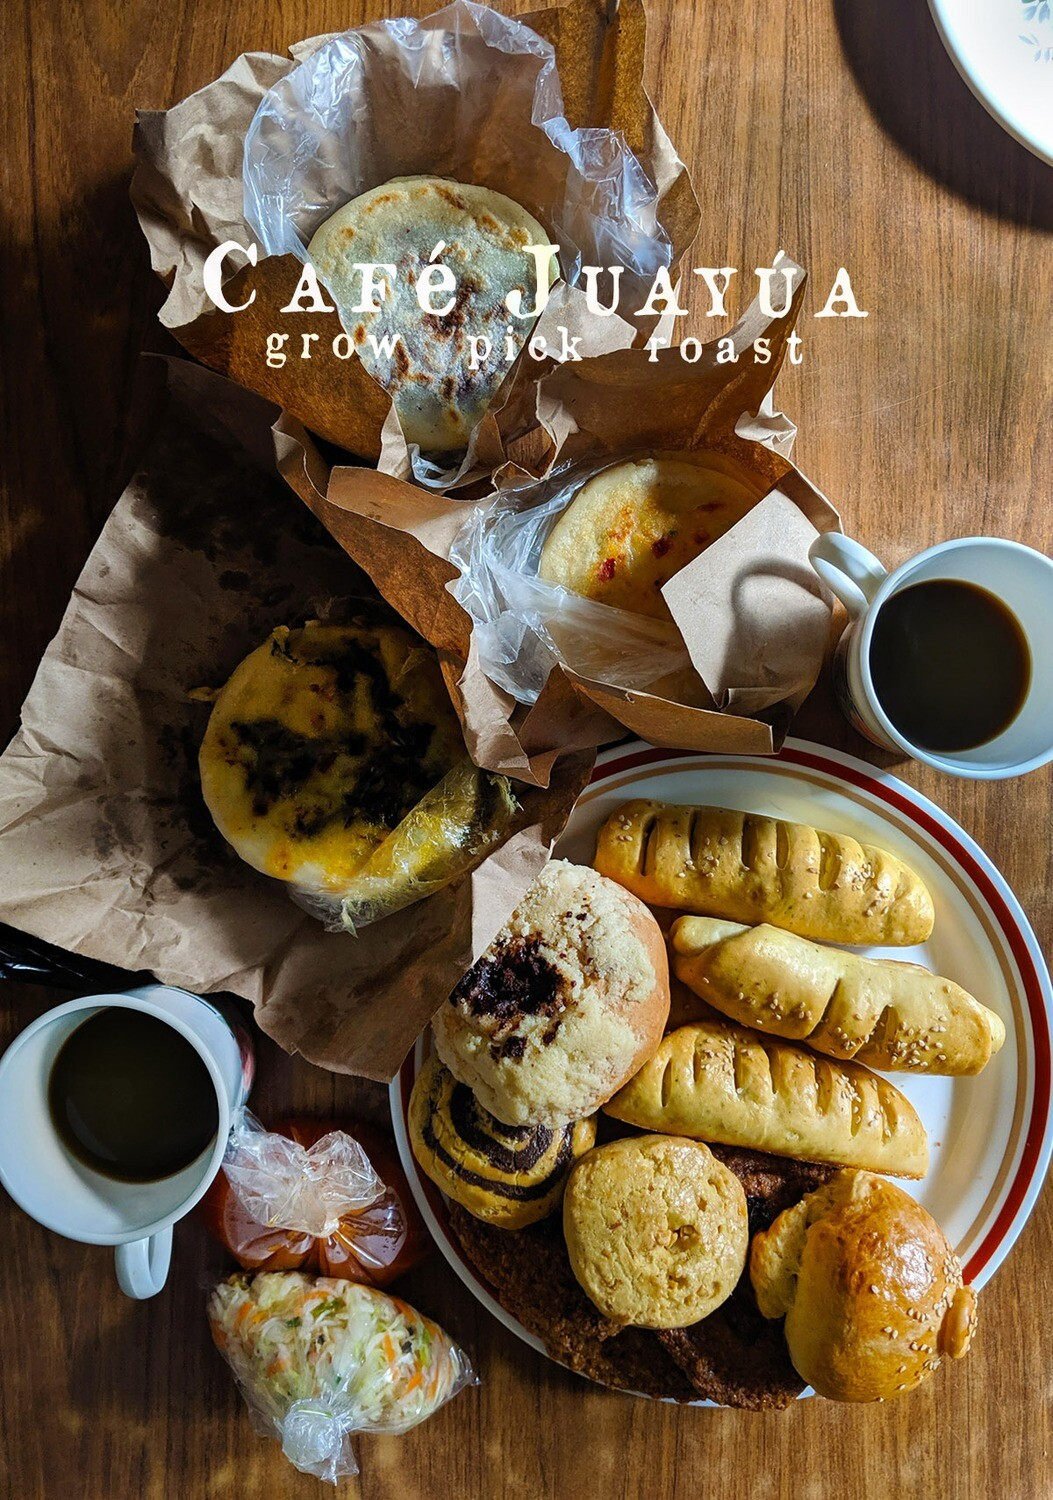 Cafe Juayua 10 lb. Share